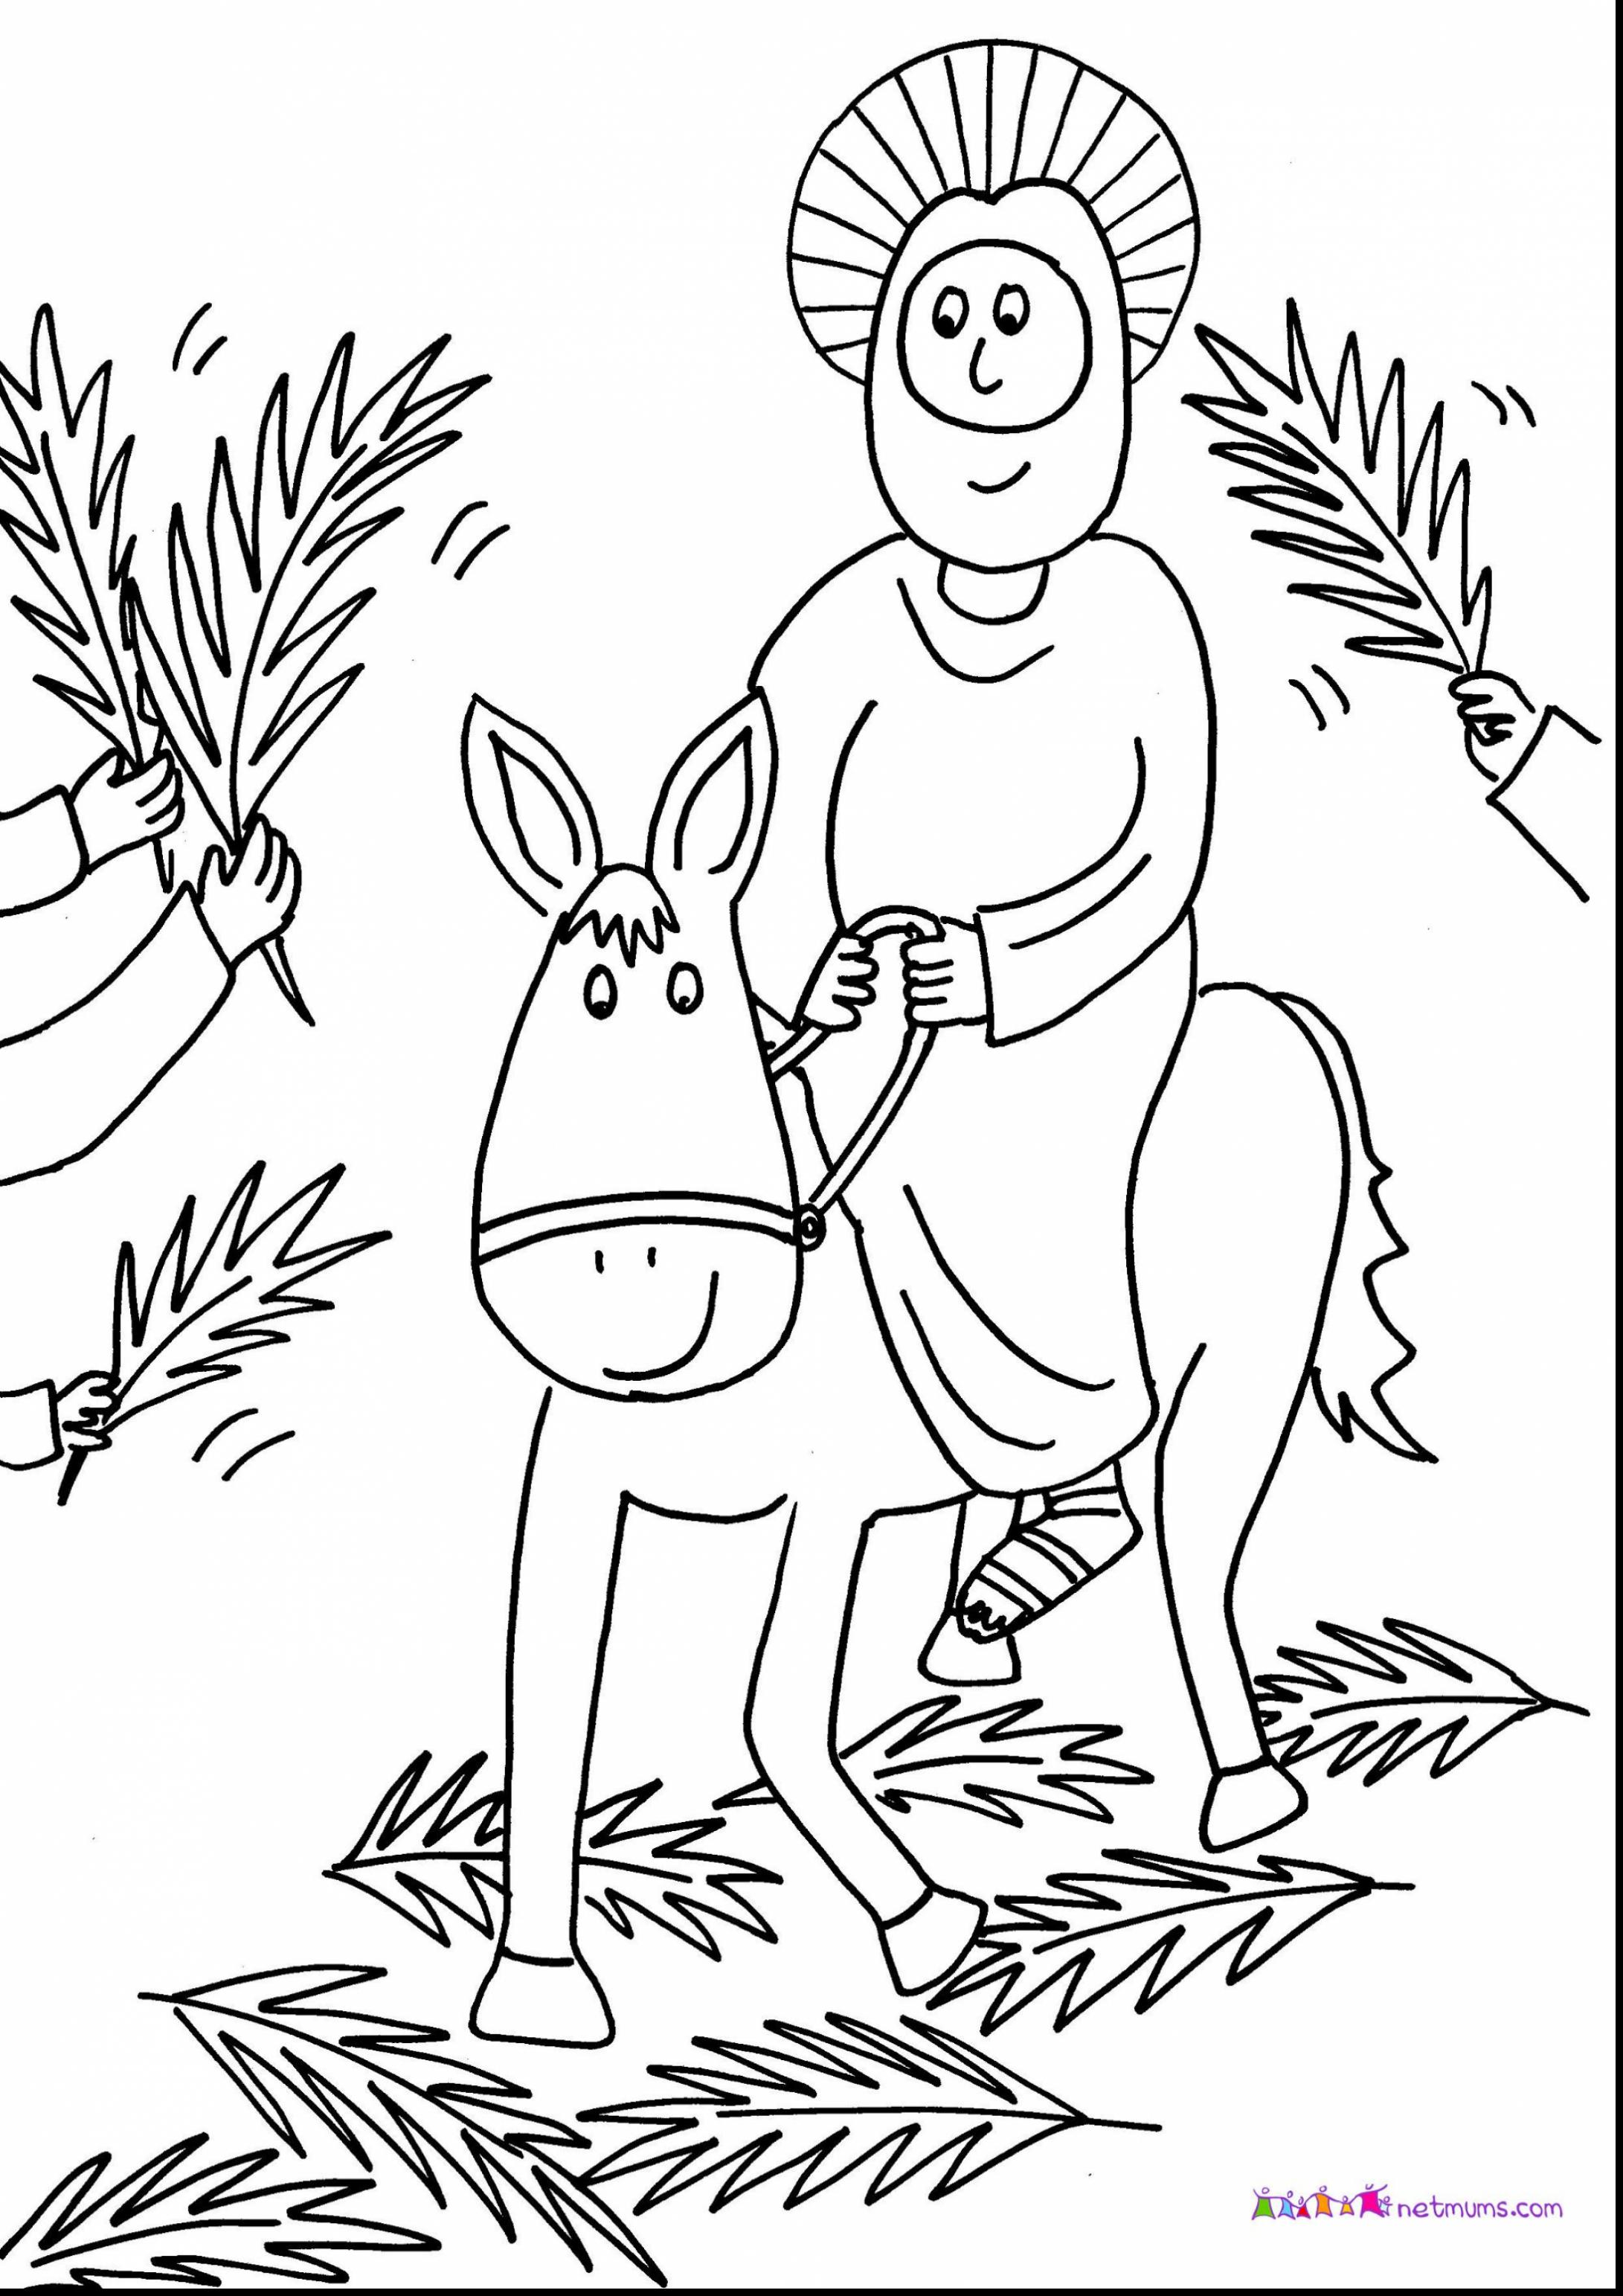 Christian Easter Coloring Pages At Getdrawings Com Free For